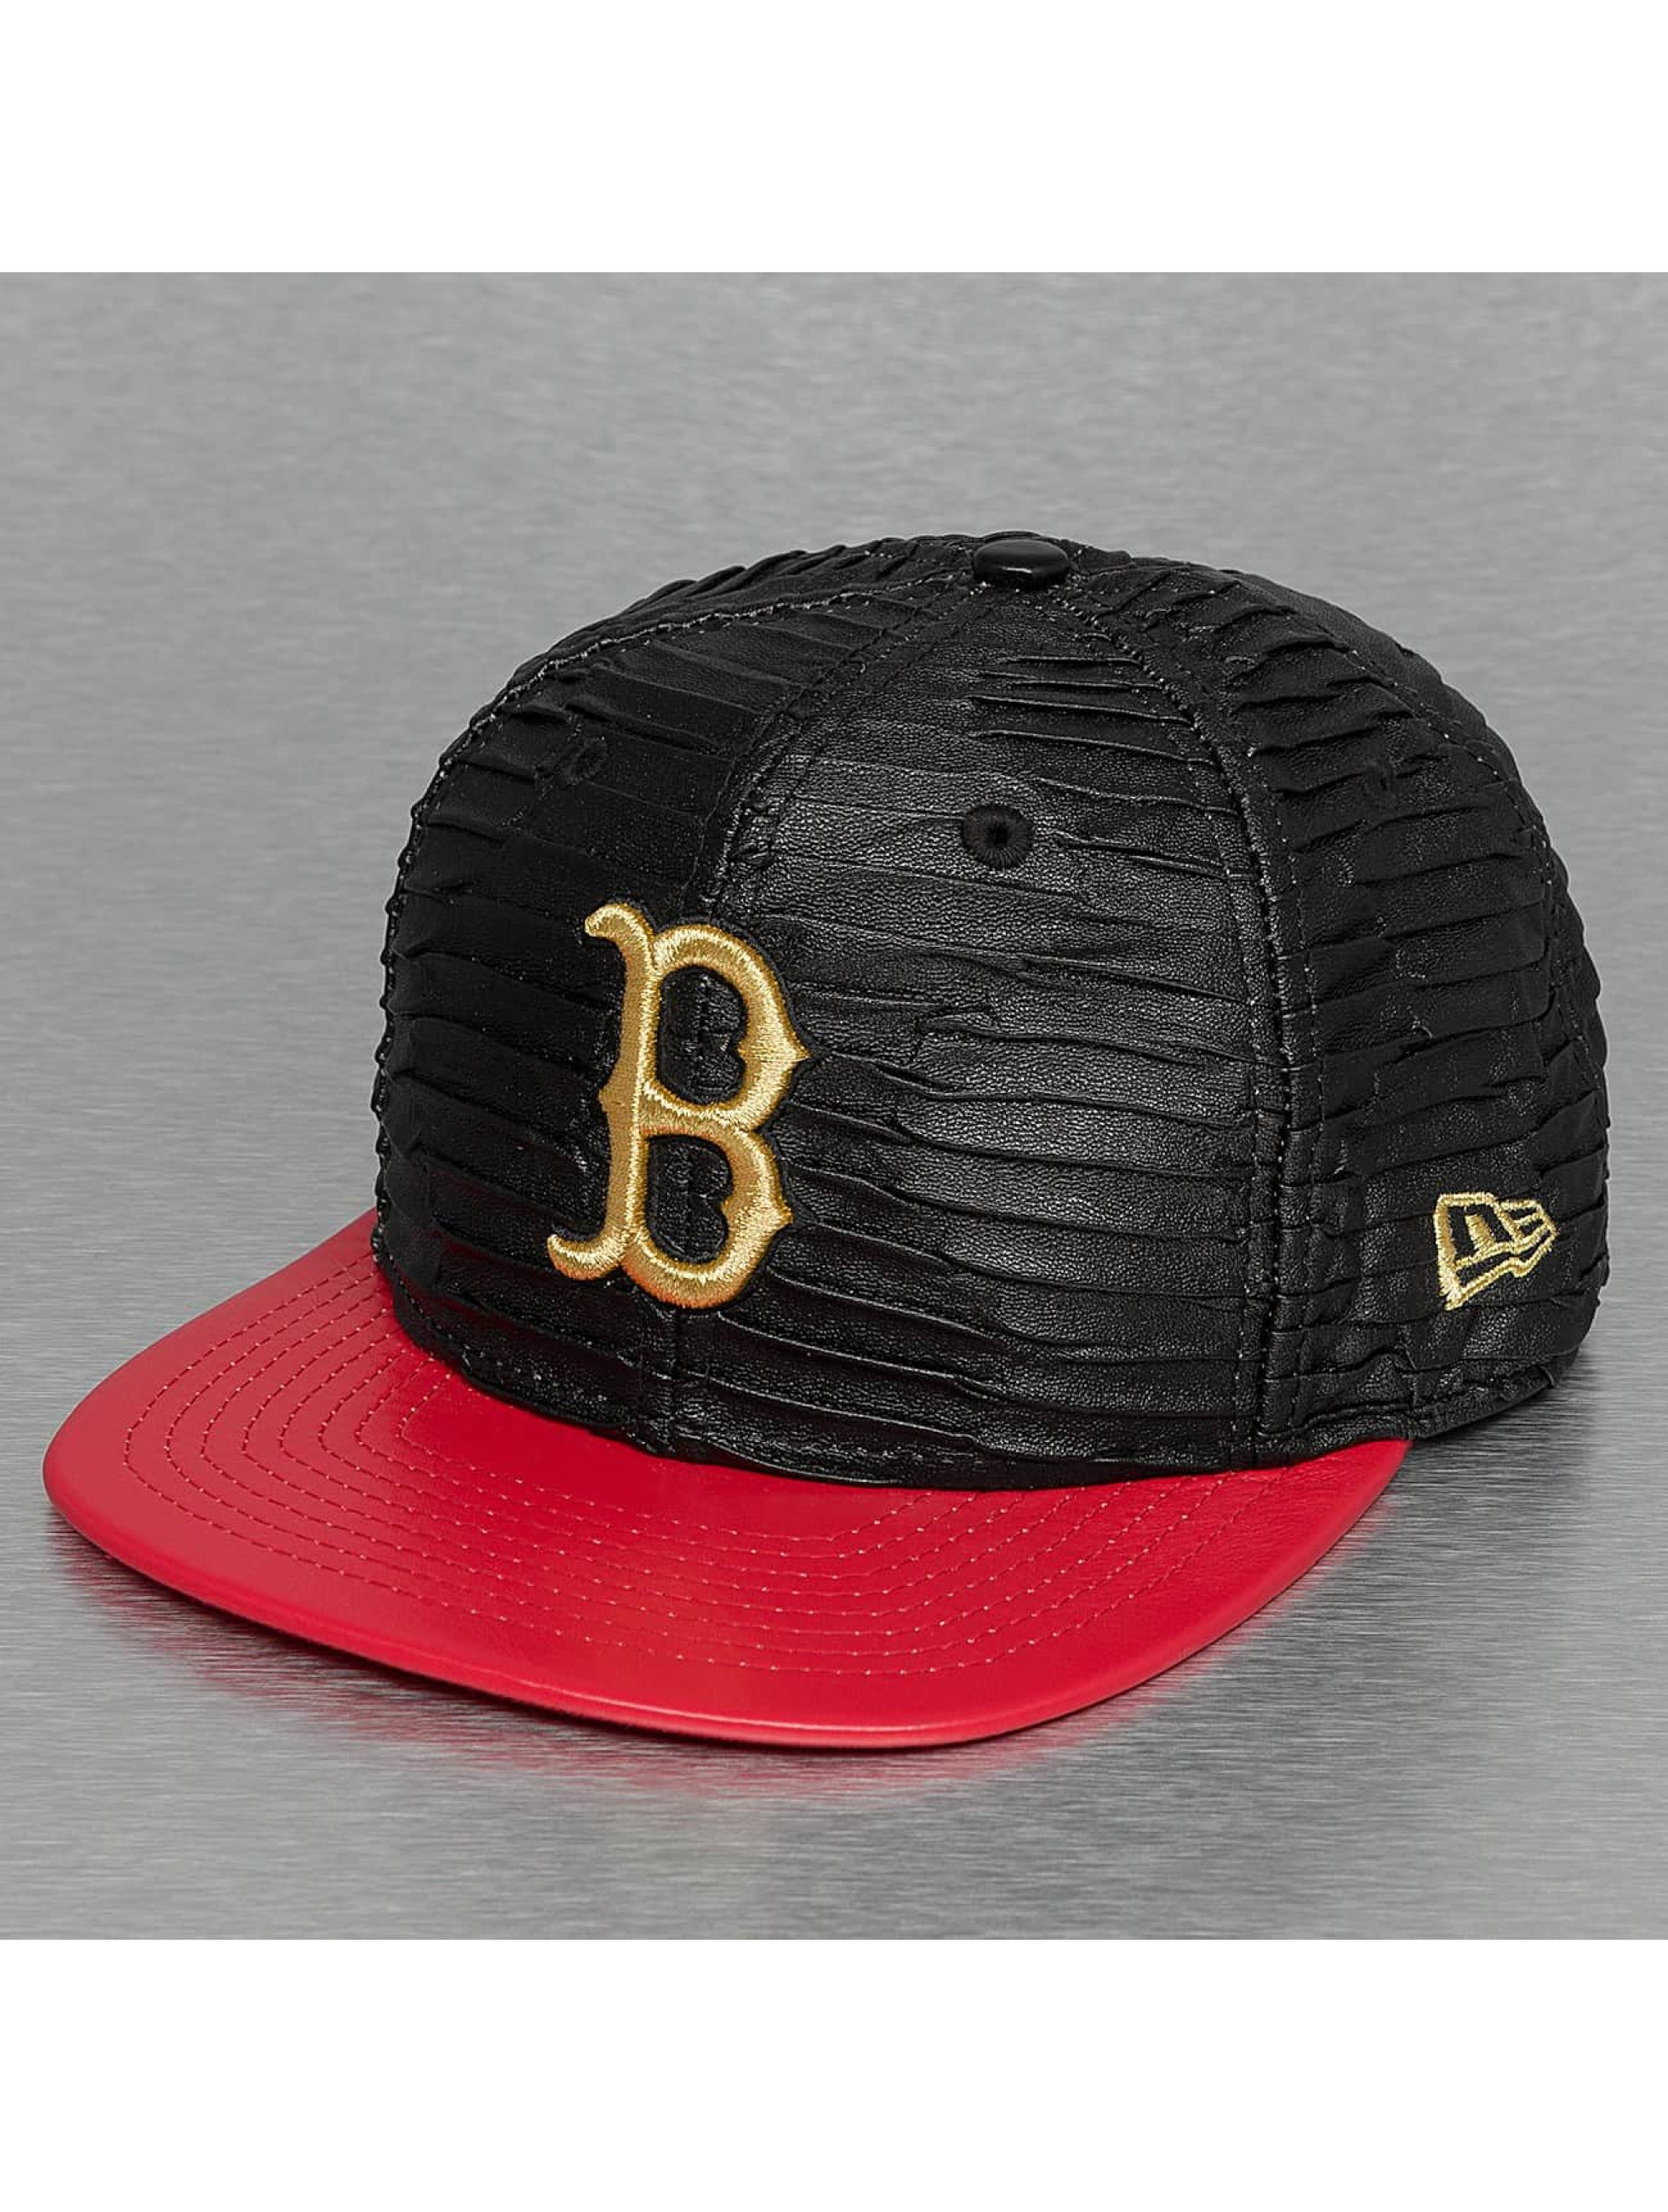 New Era Snapback Cap Leather Wave Boston Red Sox 9Fifty black